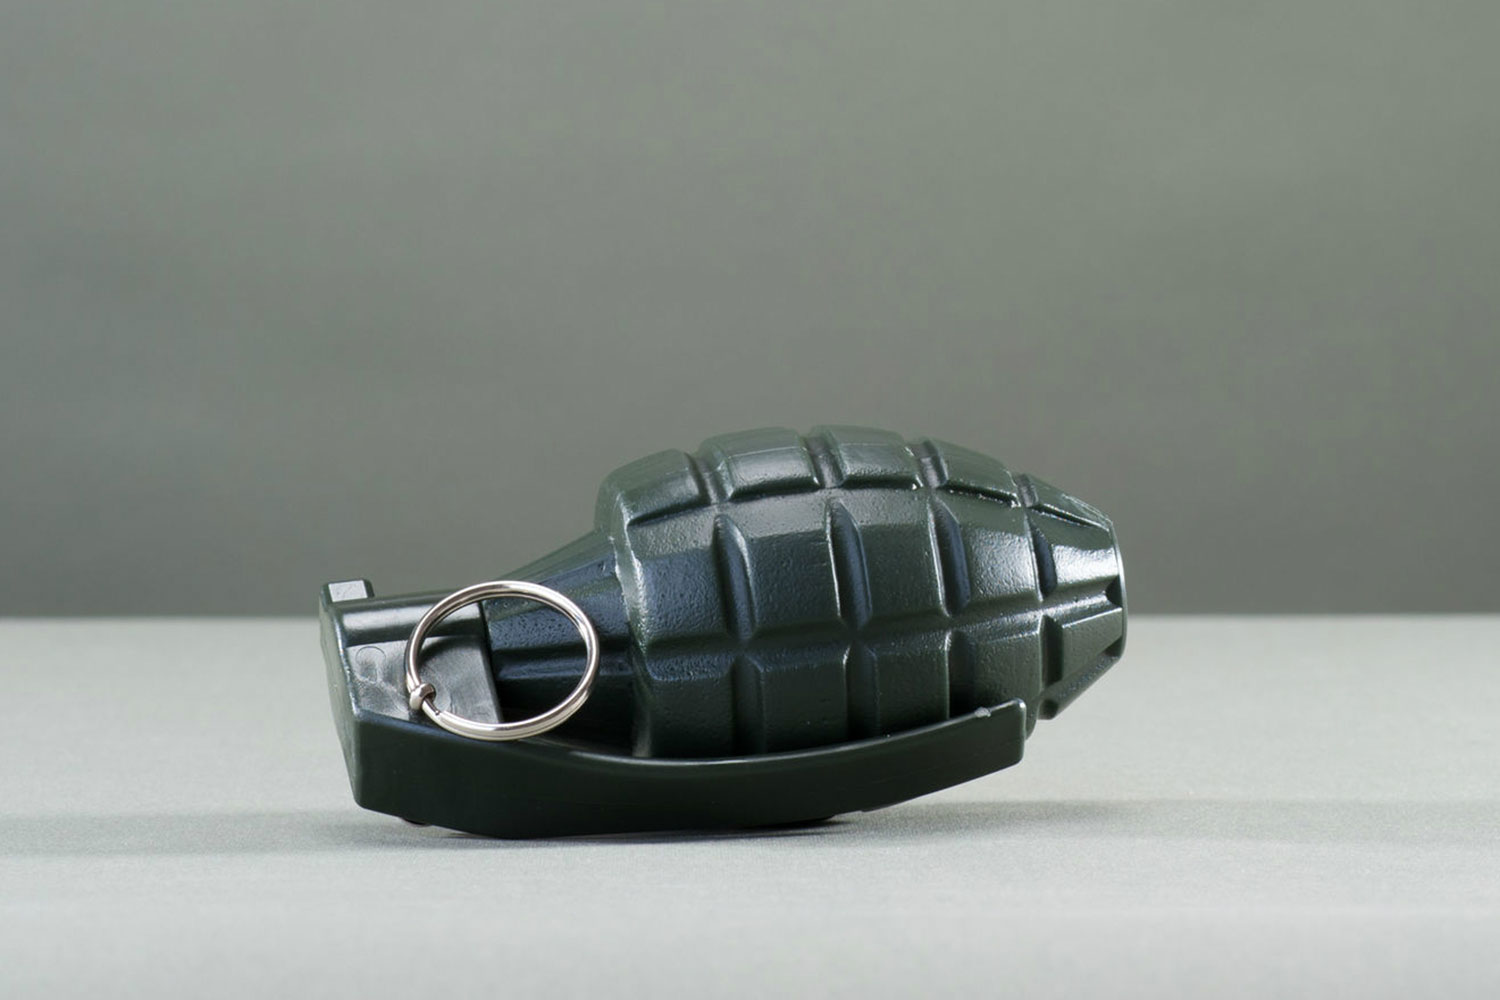 Next-generation U.S. military grenade is two grenades in one